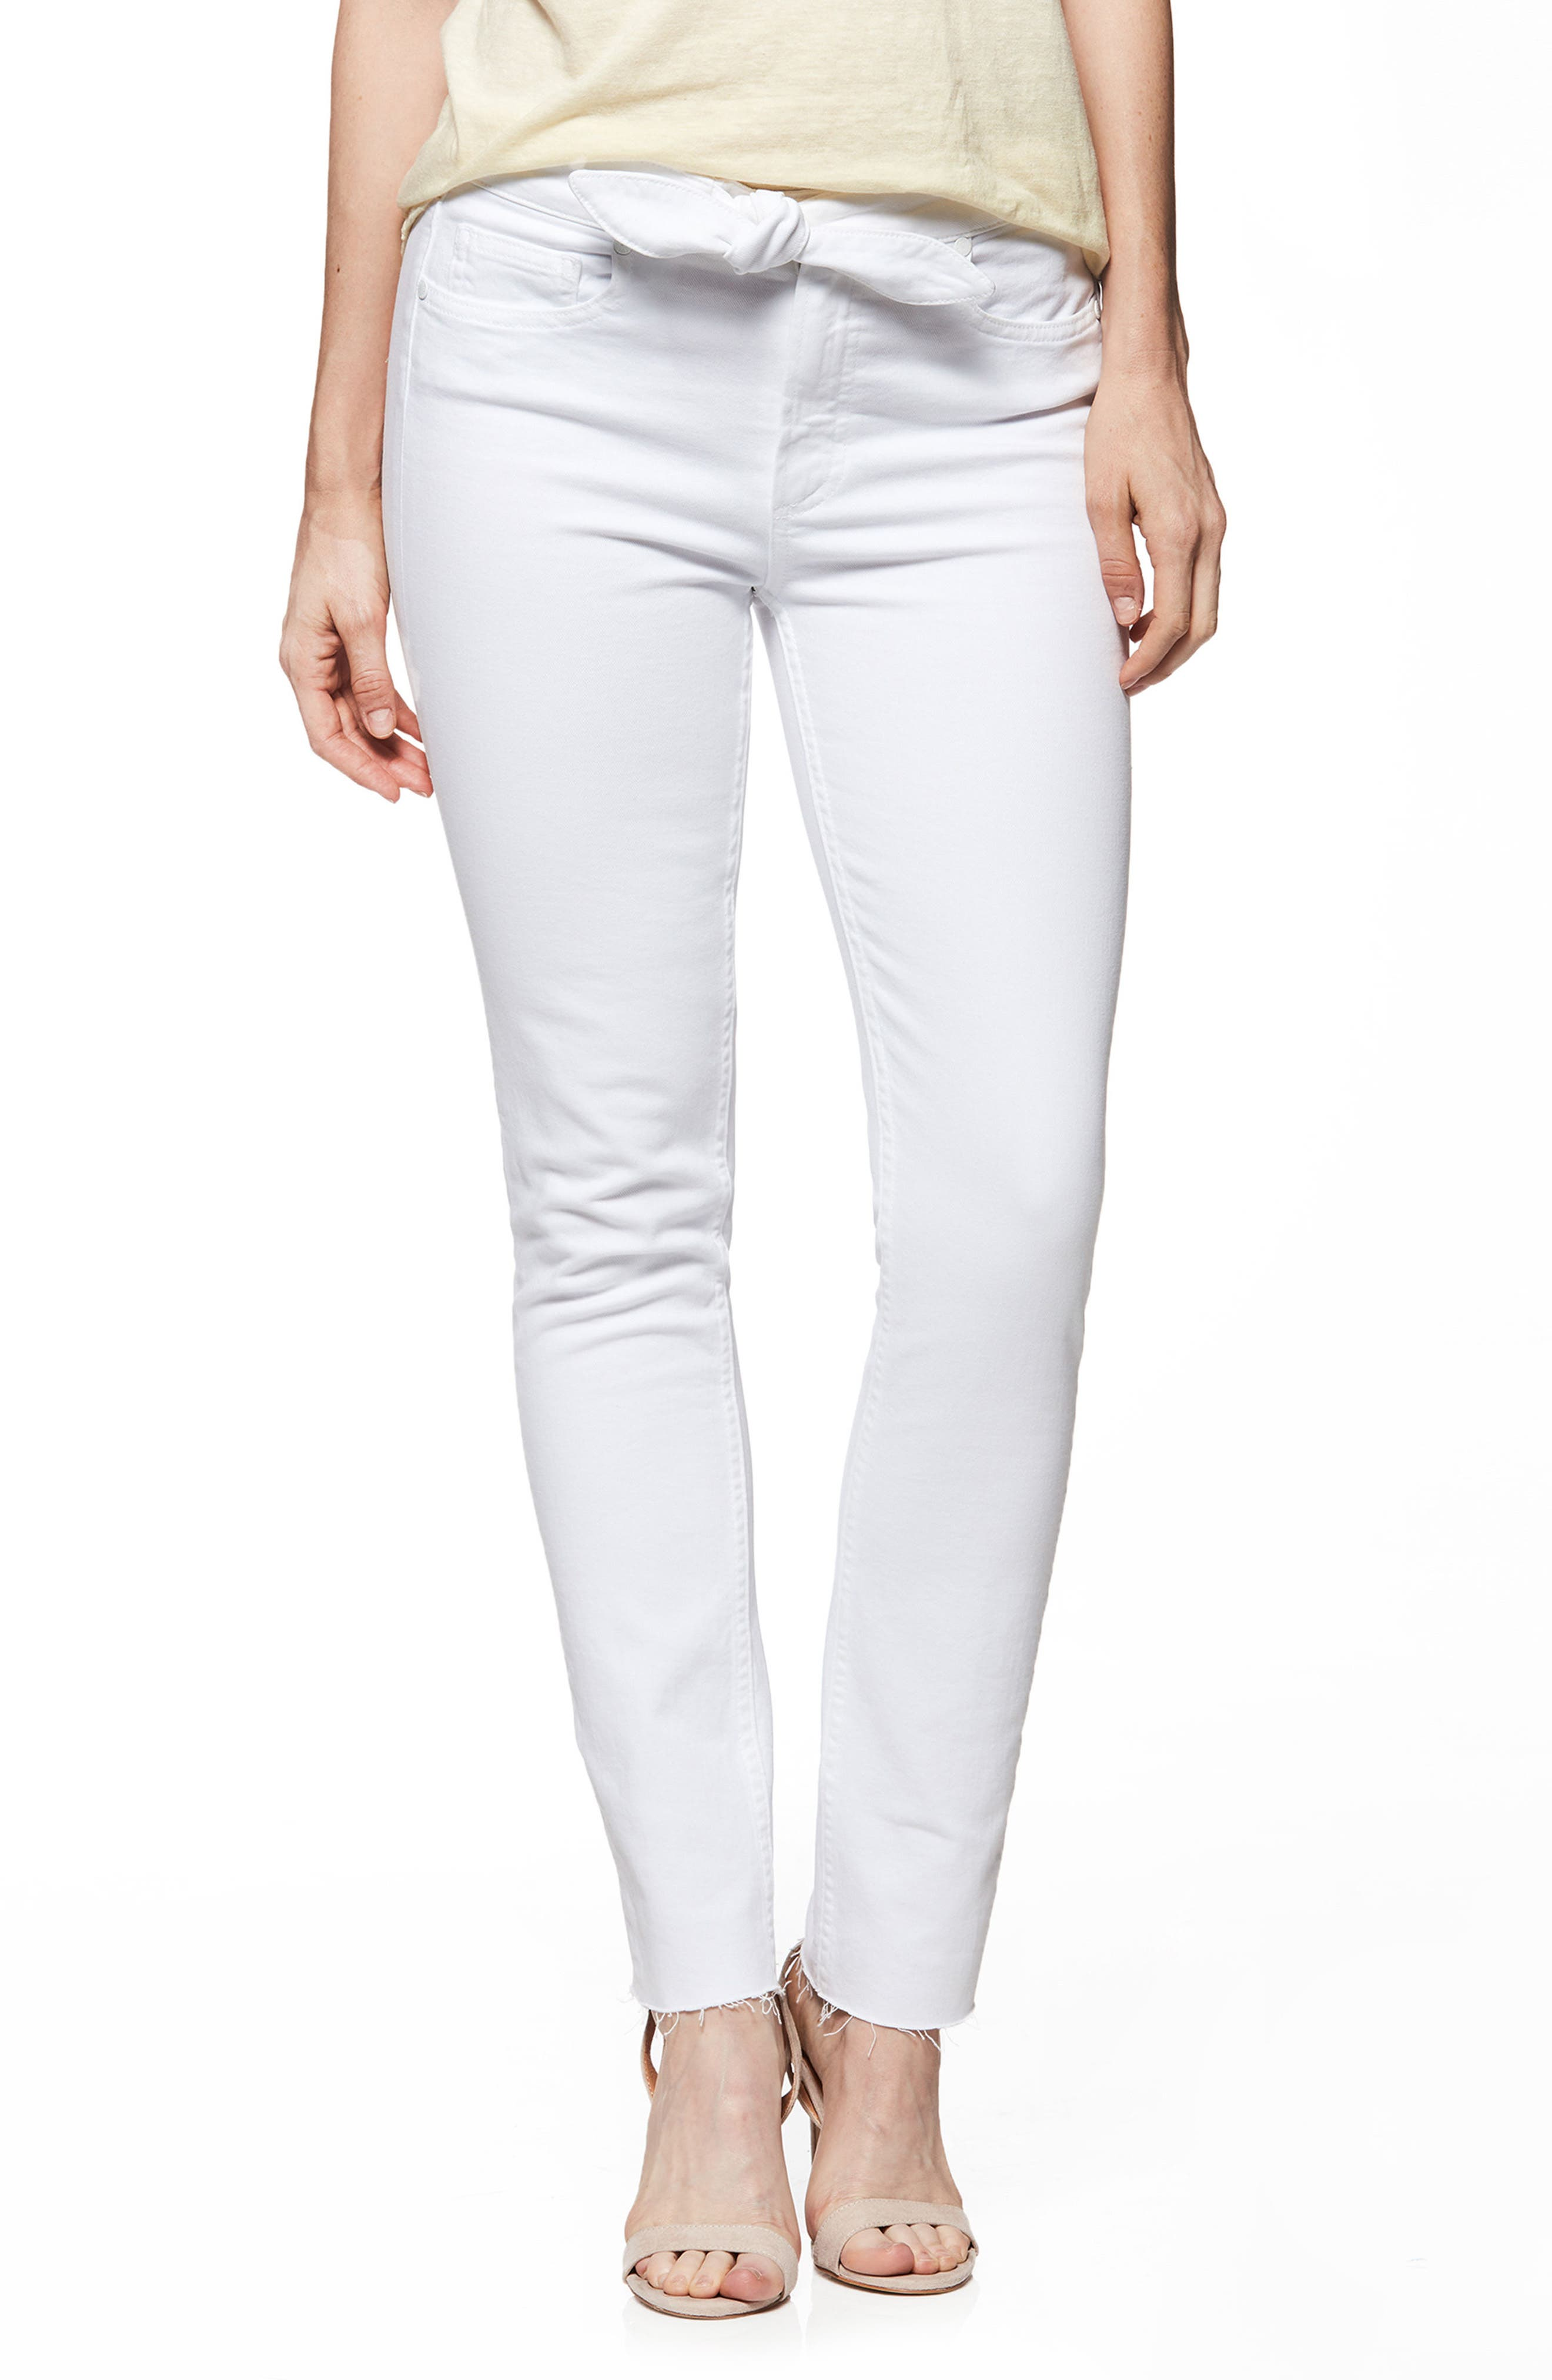 PAIGE Hoxton High Waist Ankle Skinny Jeans, Main, color, 100